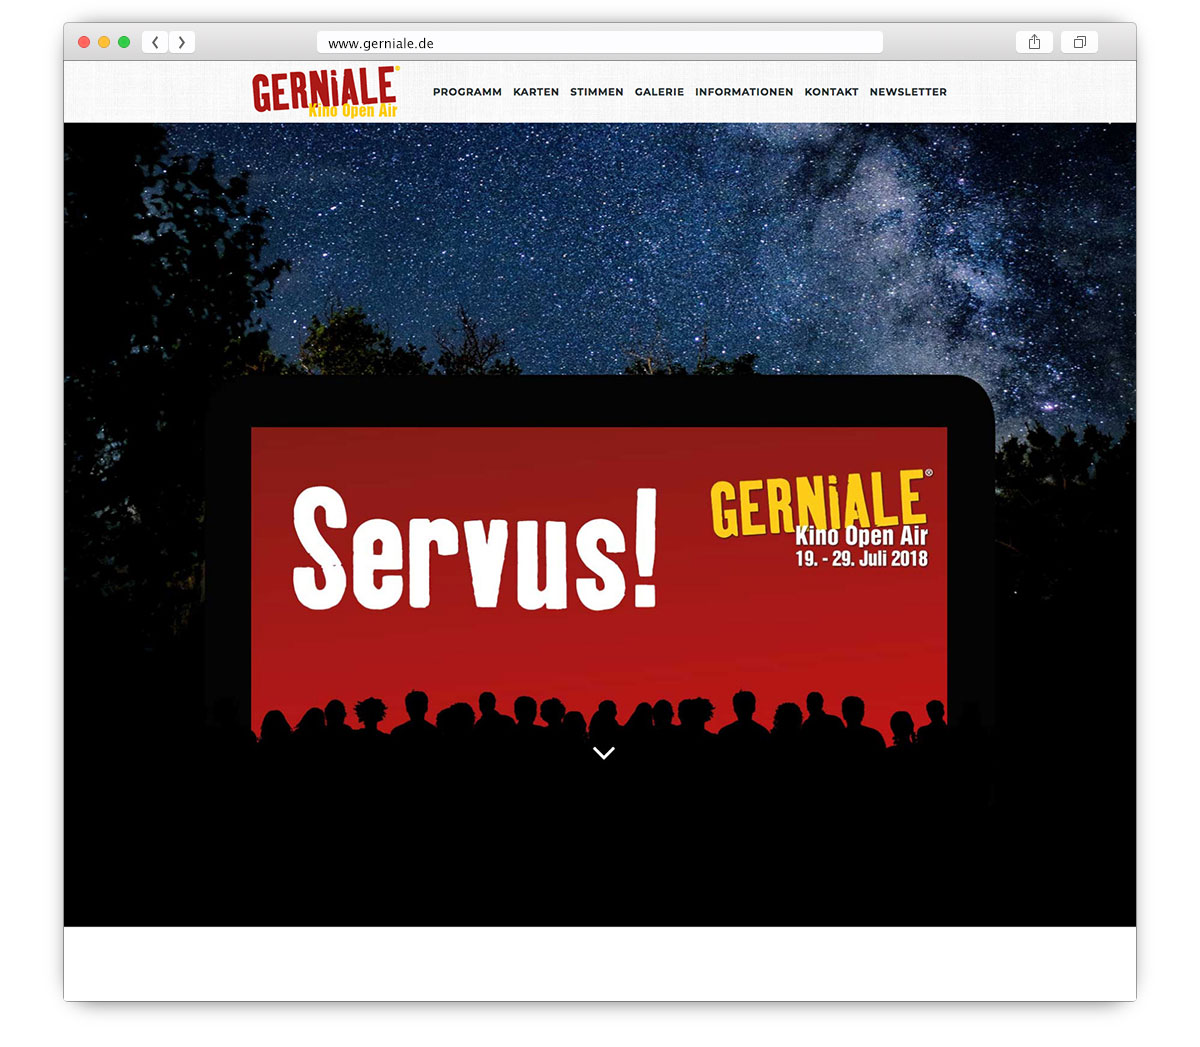 Gerniale Website Home